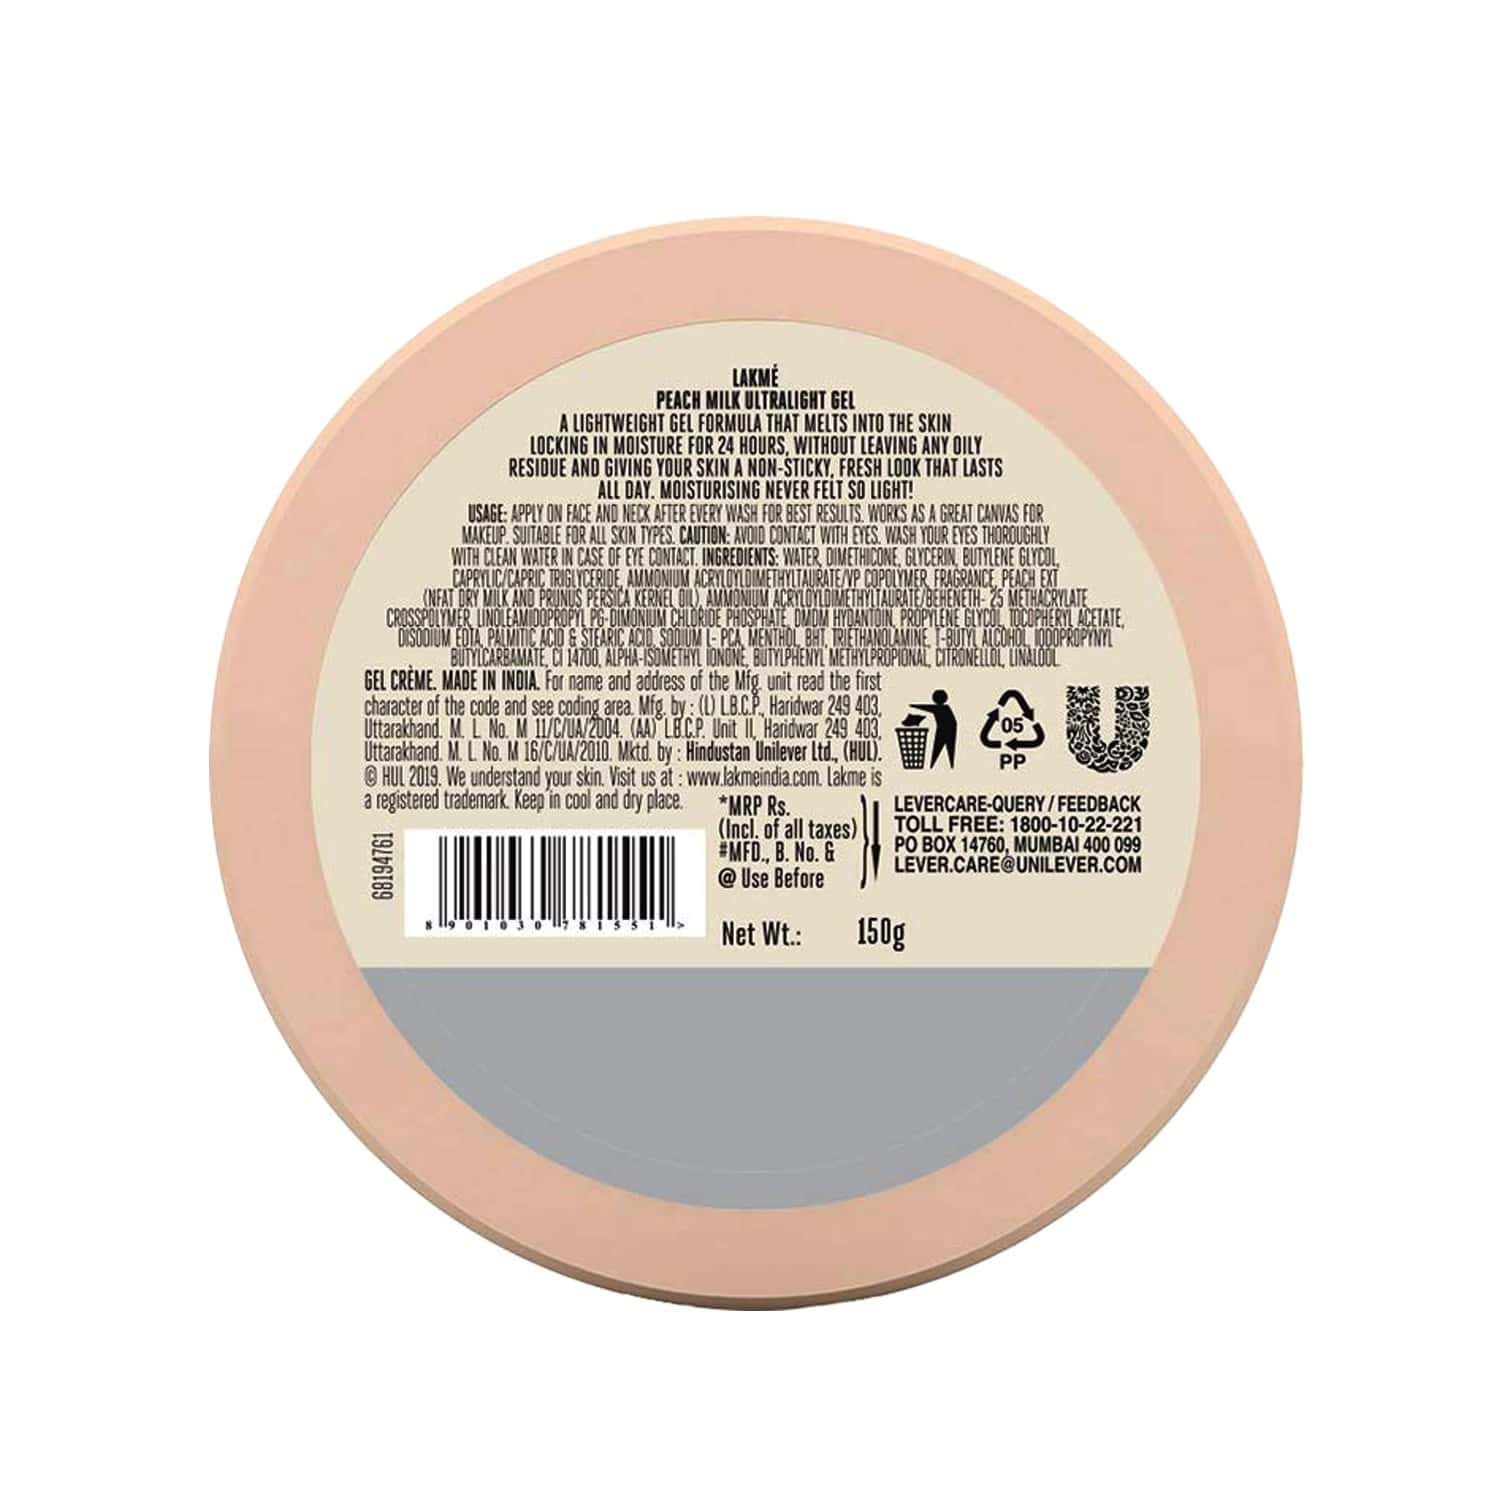 Lakme Peach Milk Ultra Light Gel-65 G